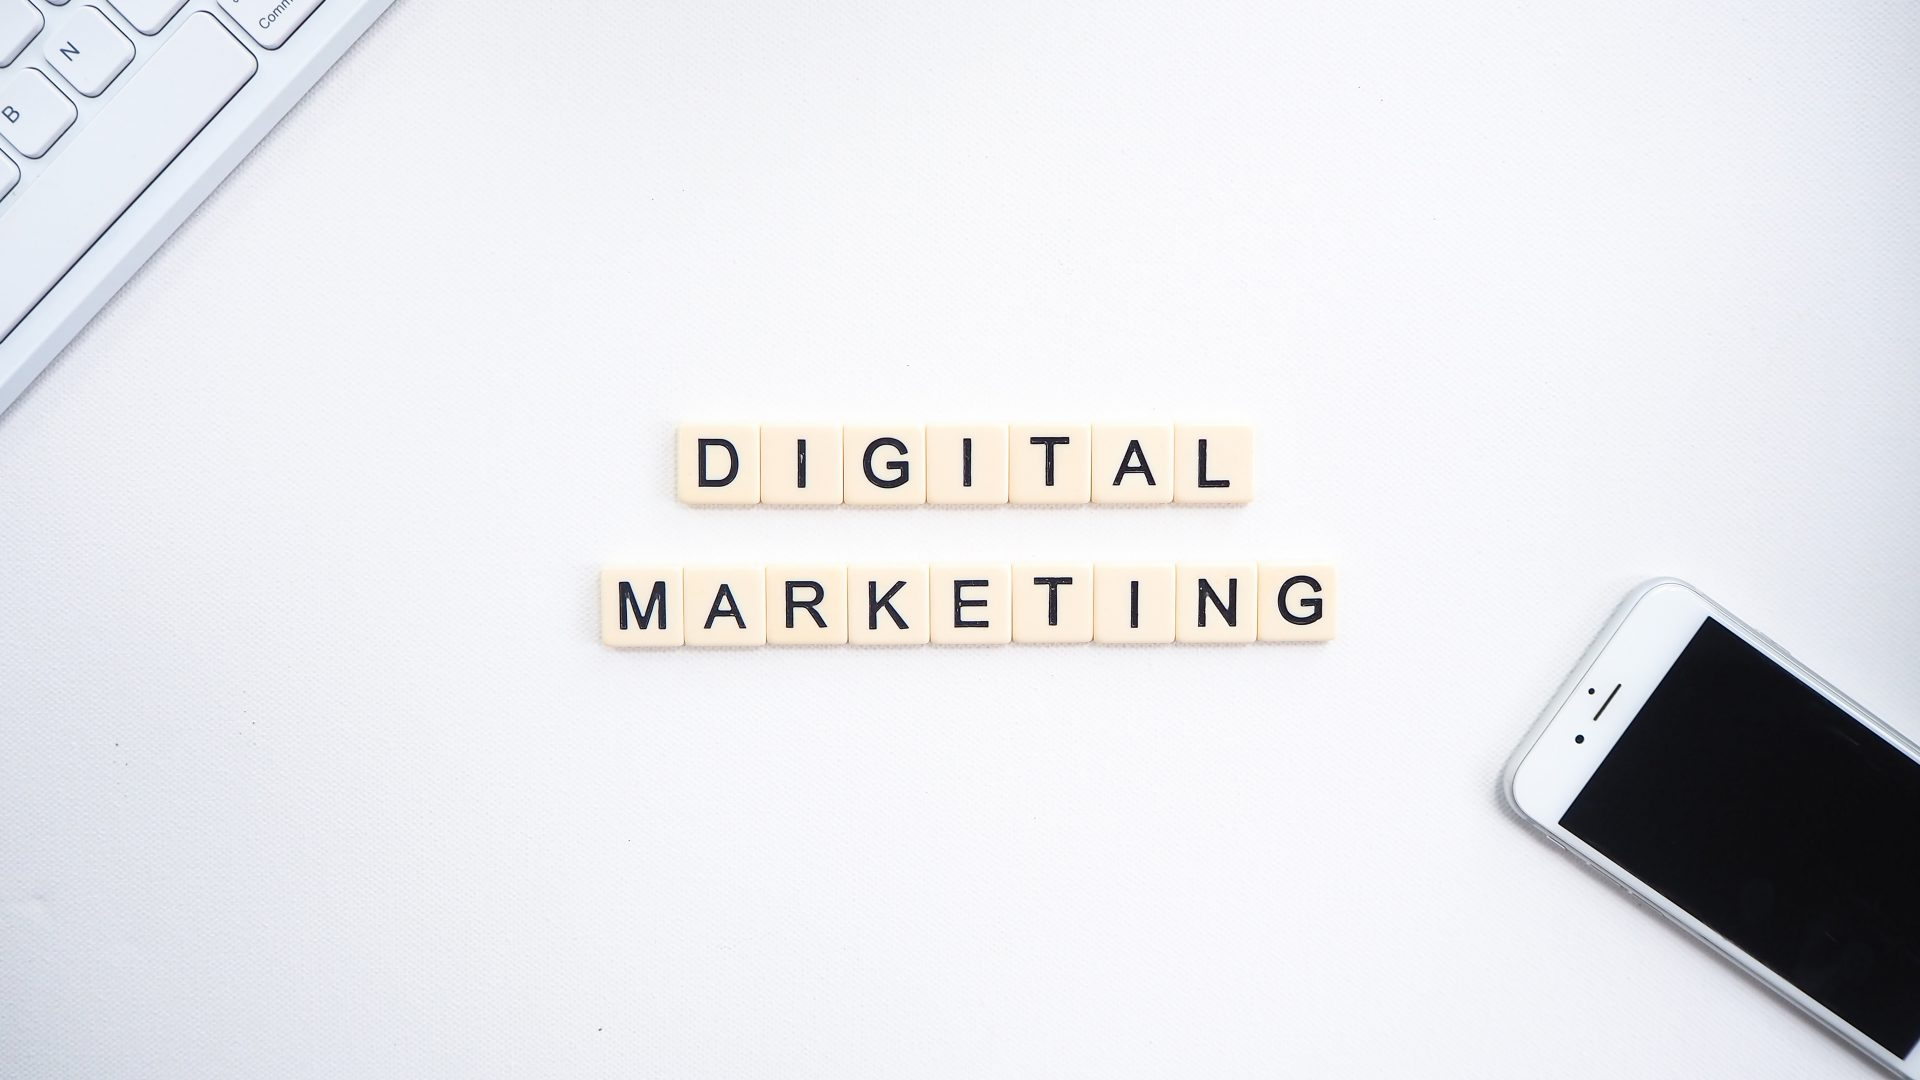 Digital Marketing for Dummies: Everything You Need to Know to Get Started